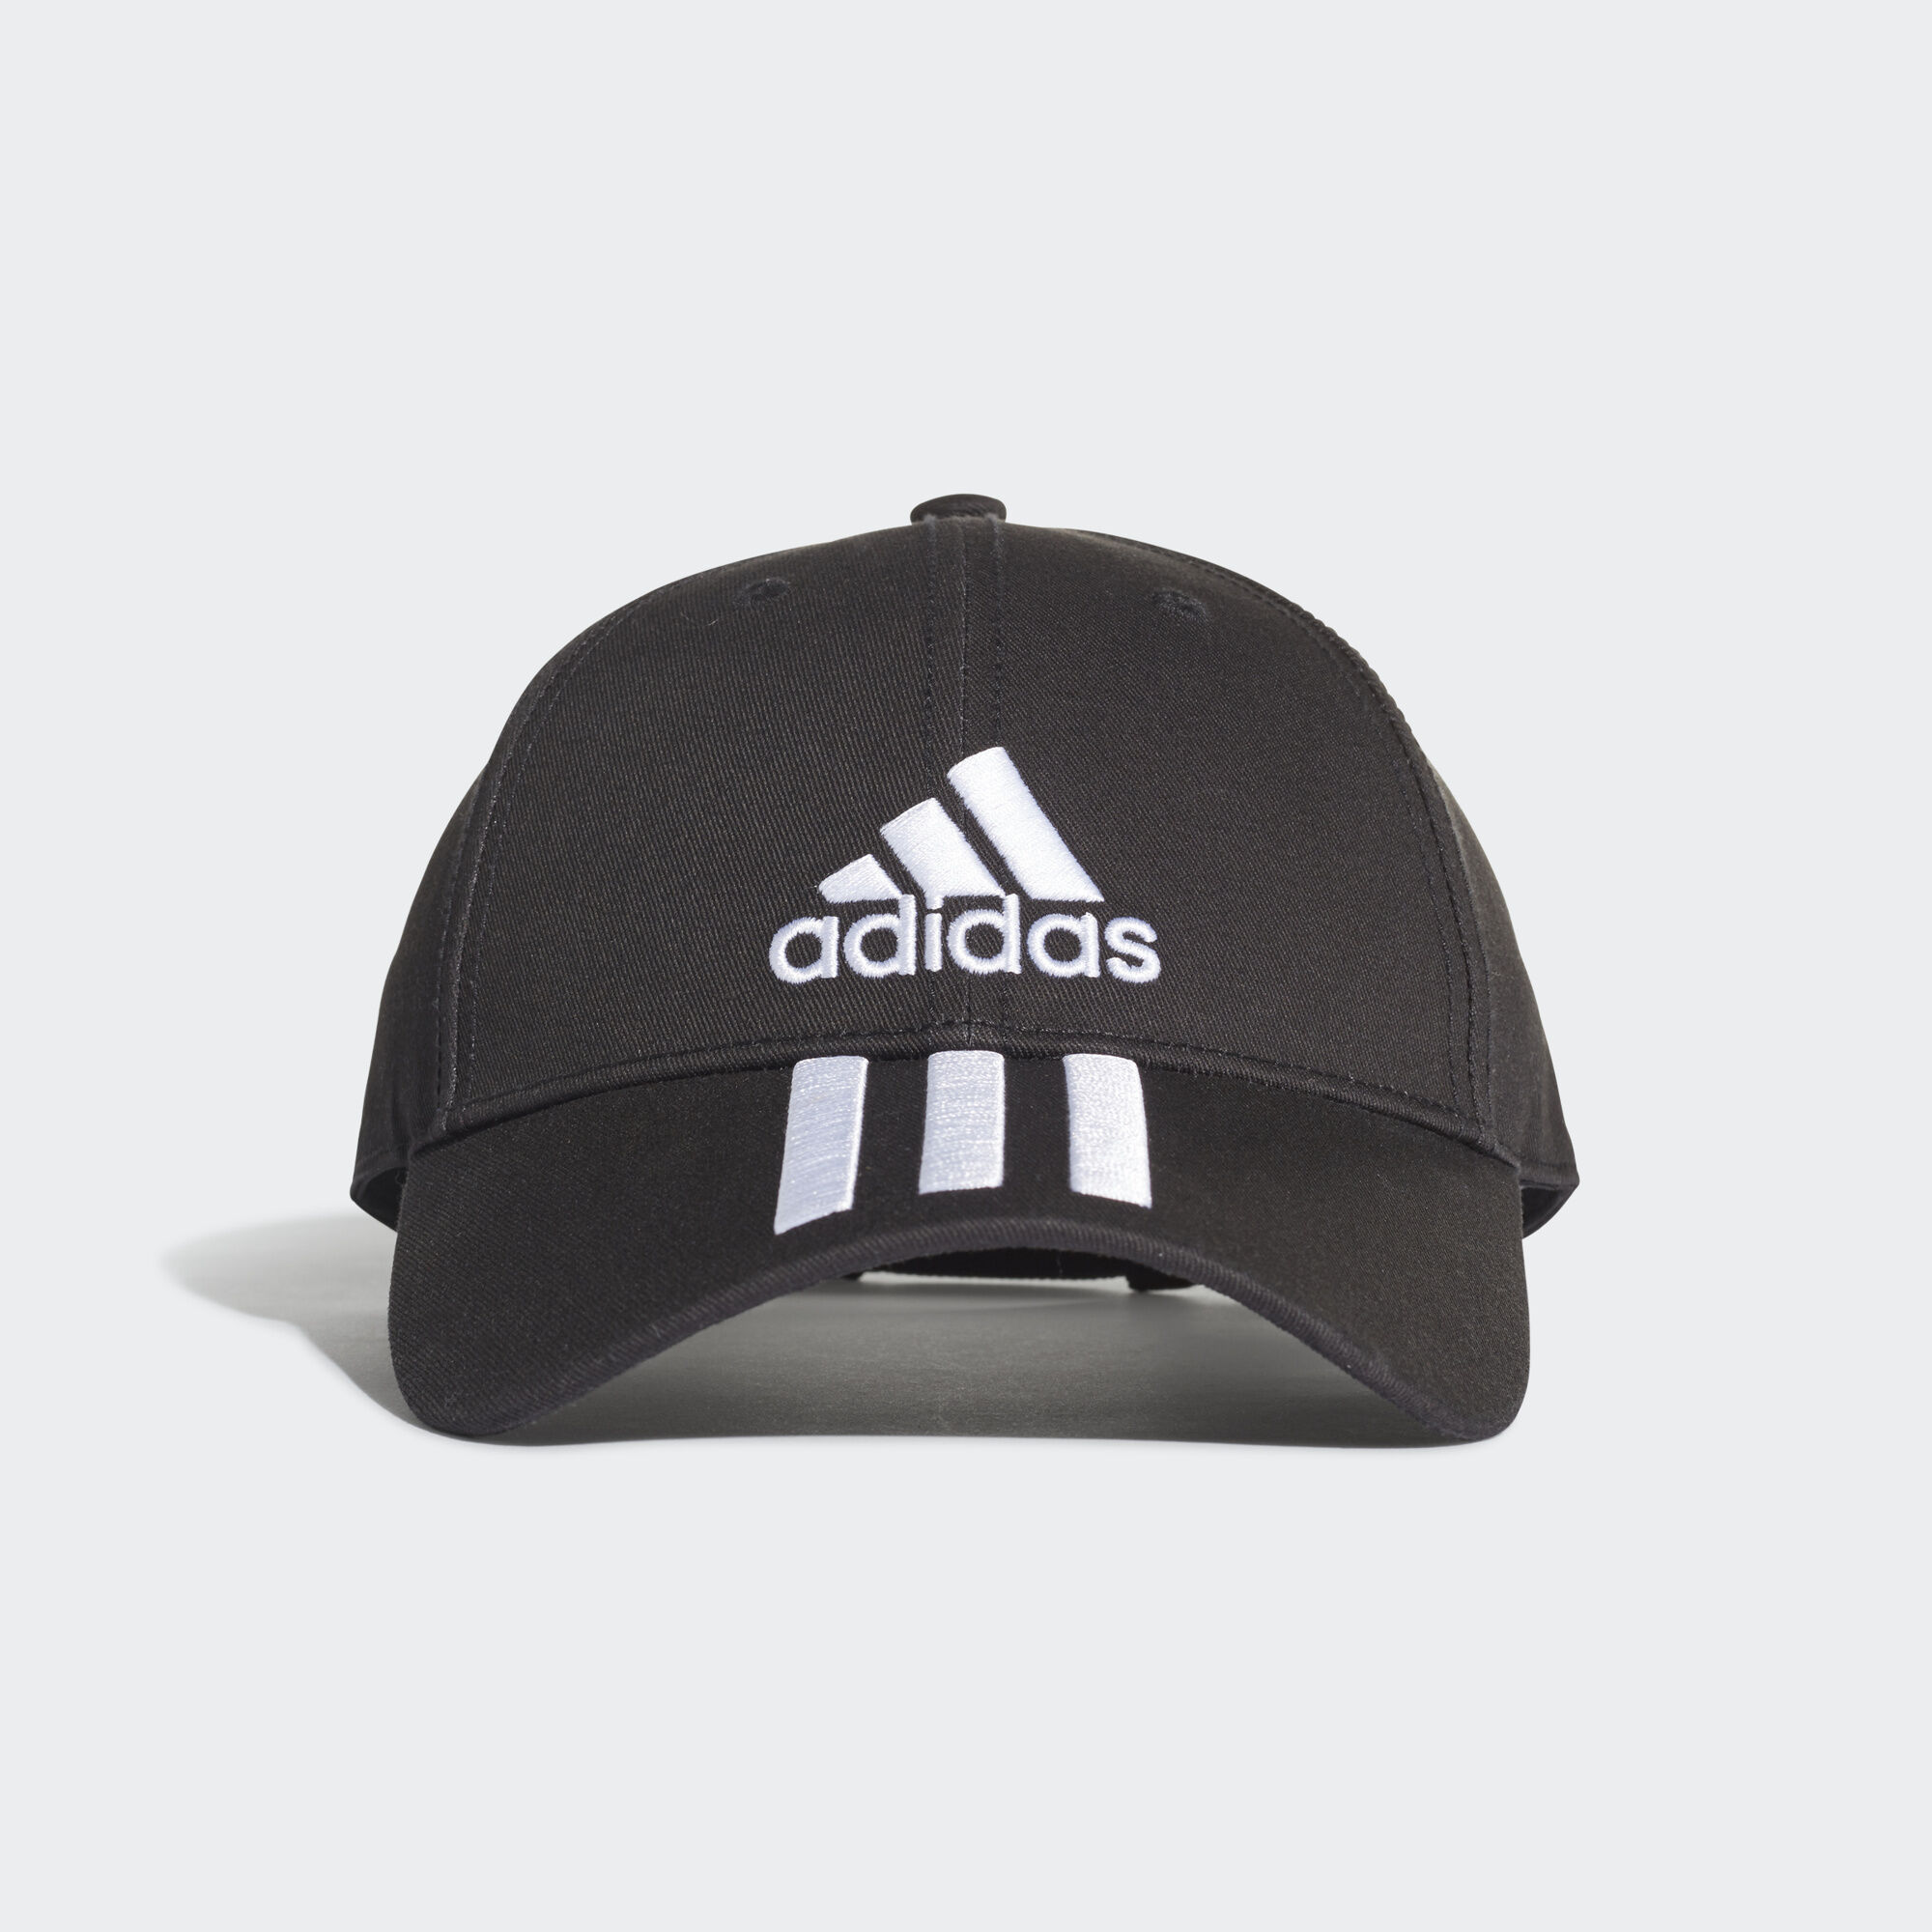 adidas - Six-Panel Classic 3-Stripes Cap Black   White   White DU0196 f82d9d87a07a